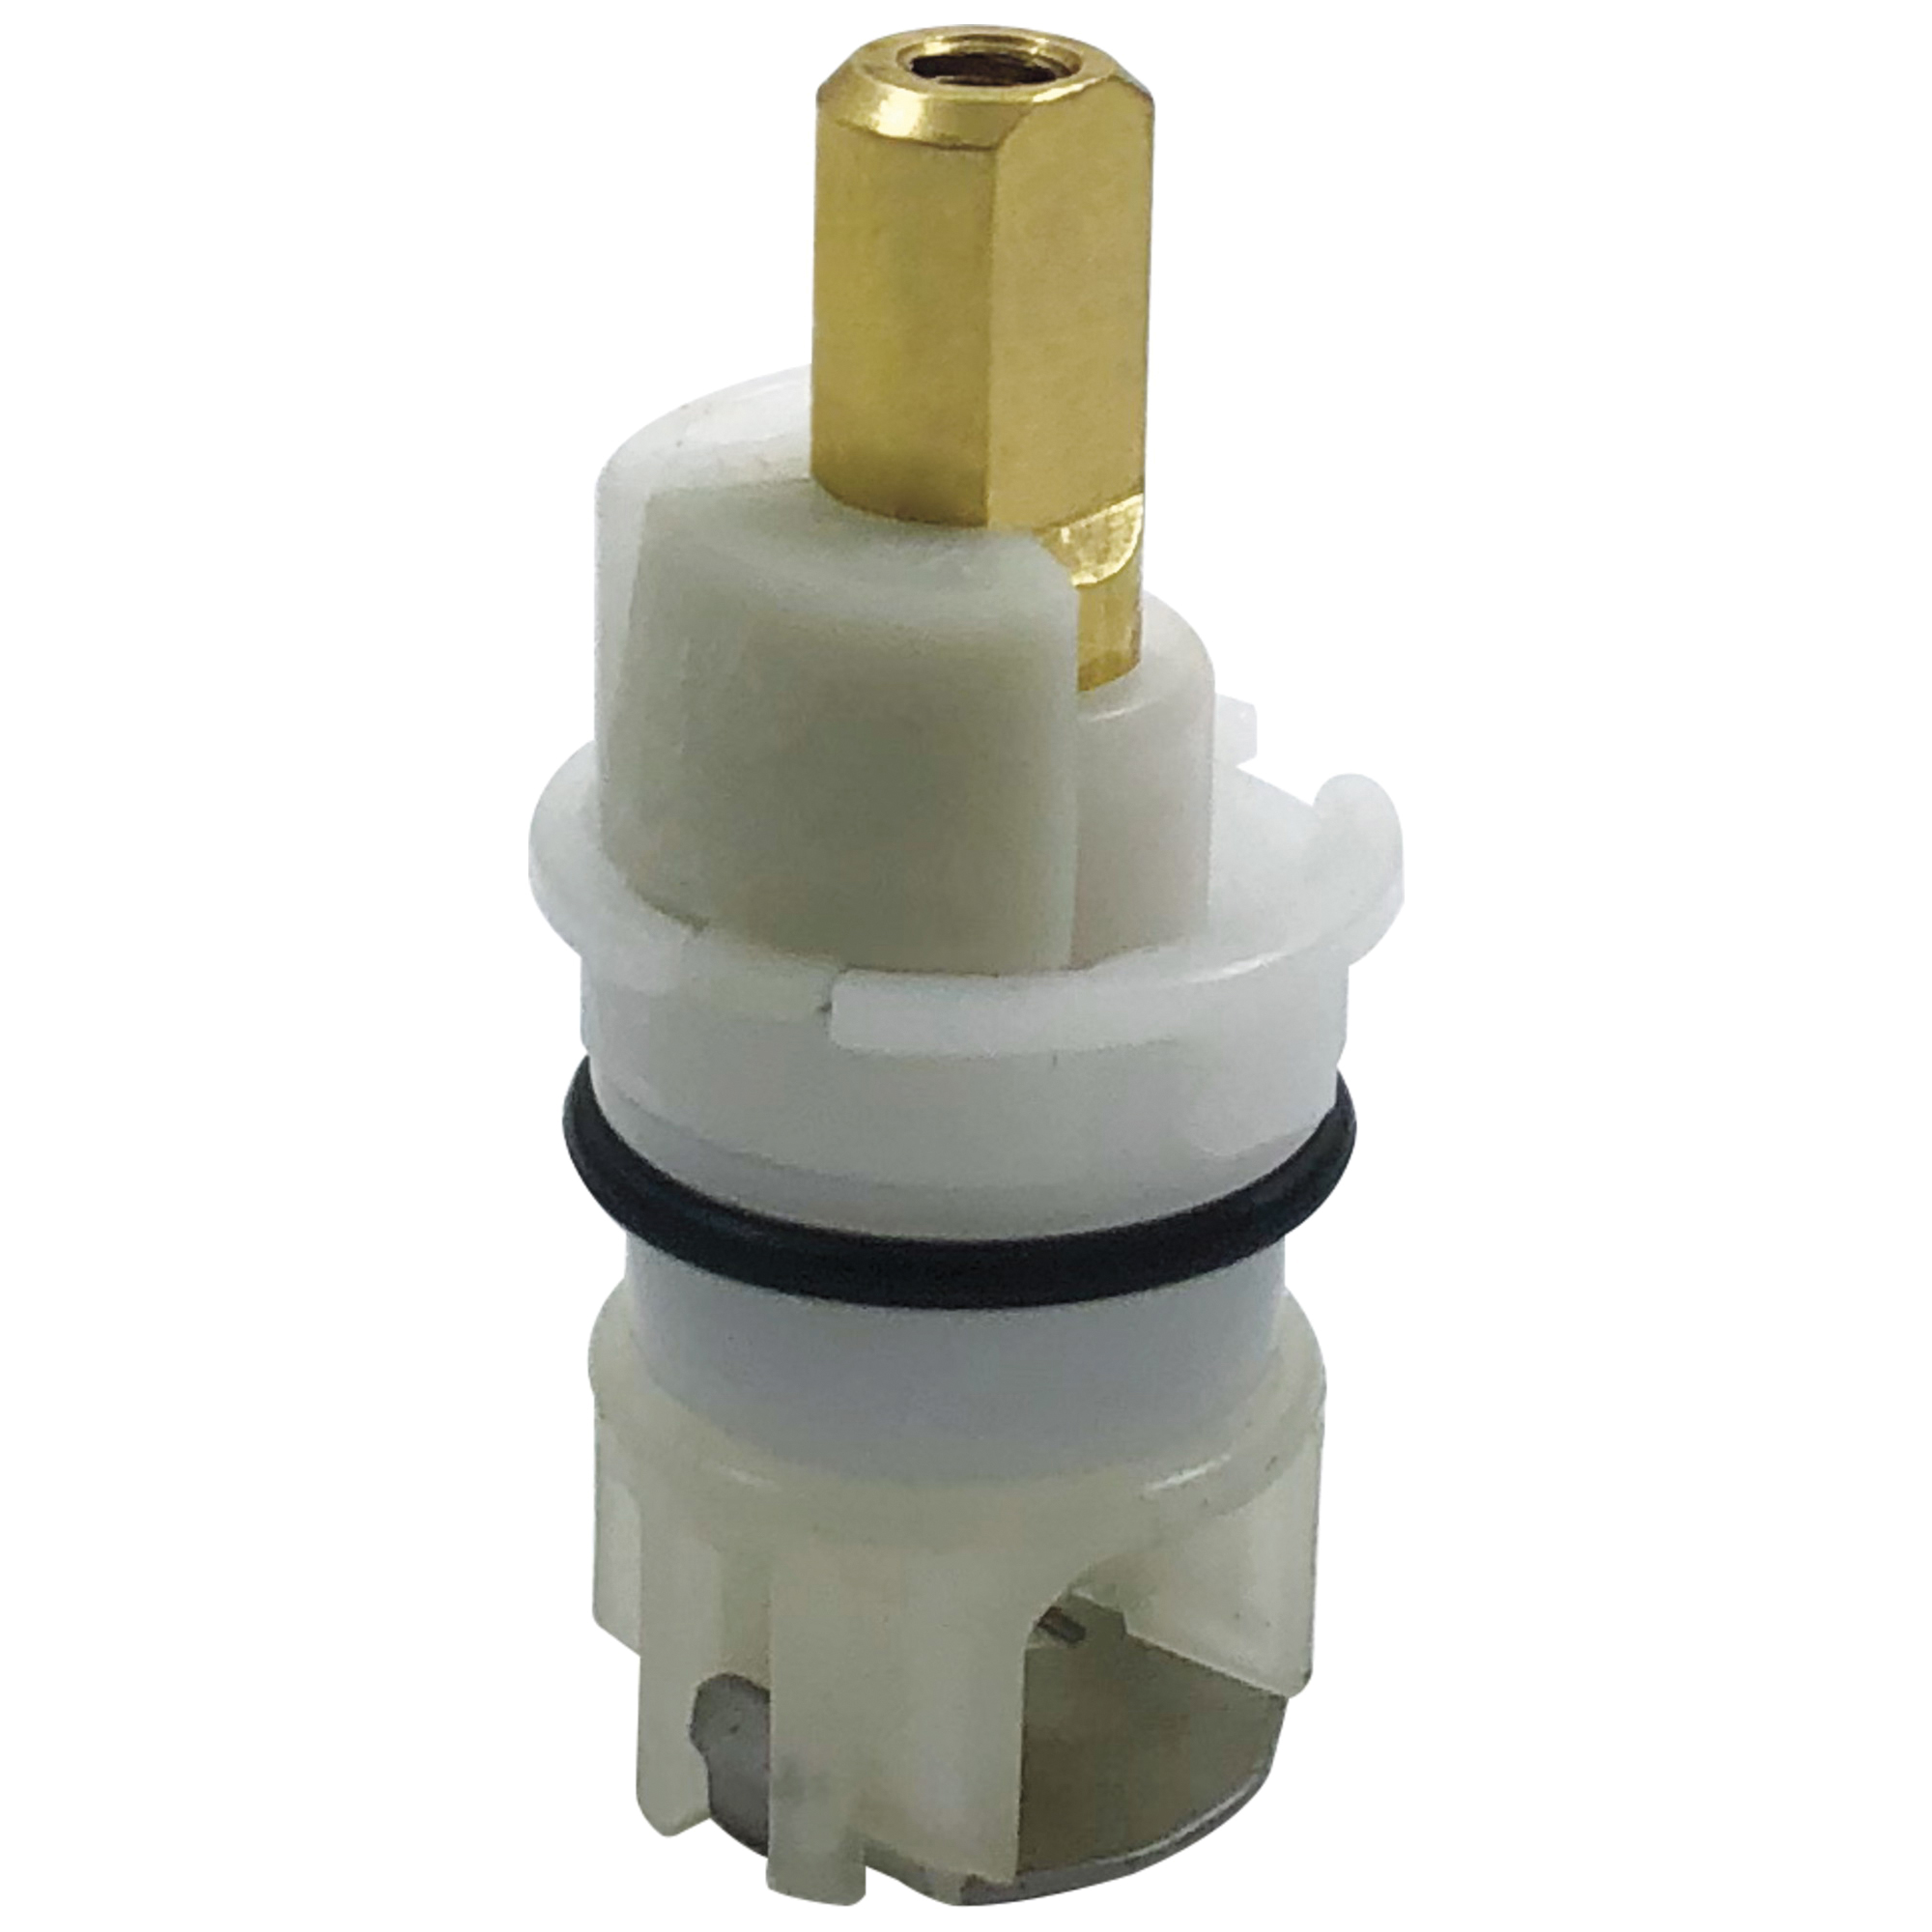 DELTA® RP25513 Replacement Stem Assembly With 1/4 Turn Stop, For Use With 2-Handle Faucet, Brass, Domestic